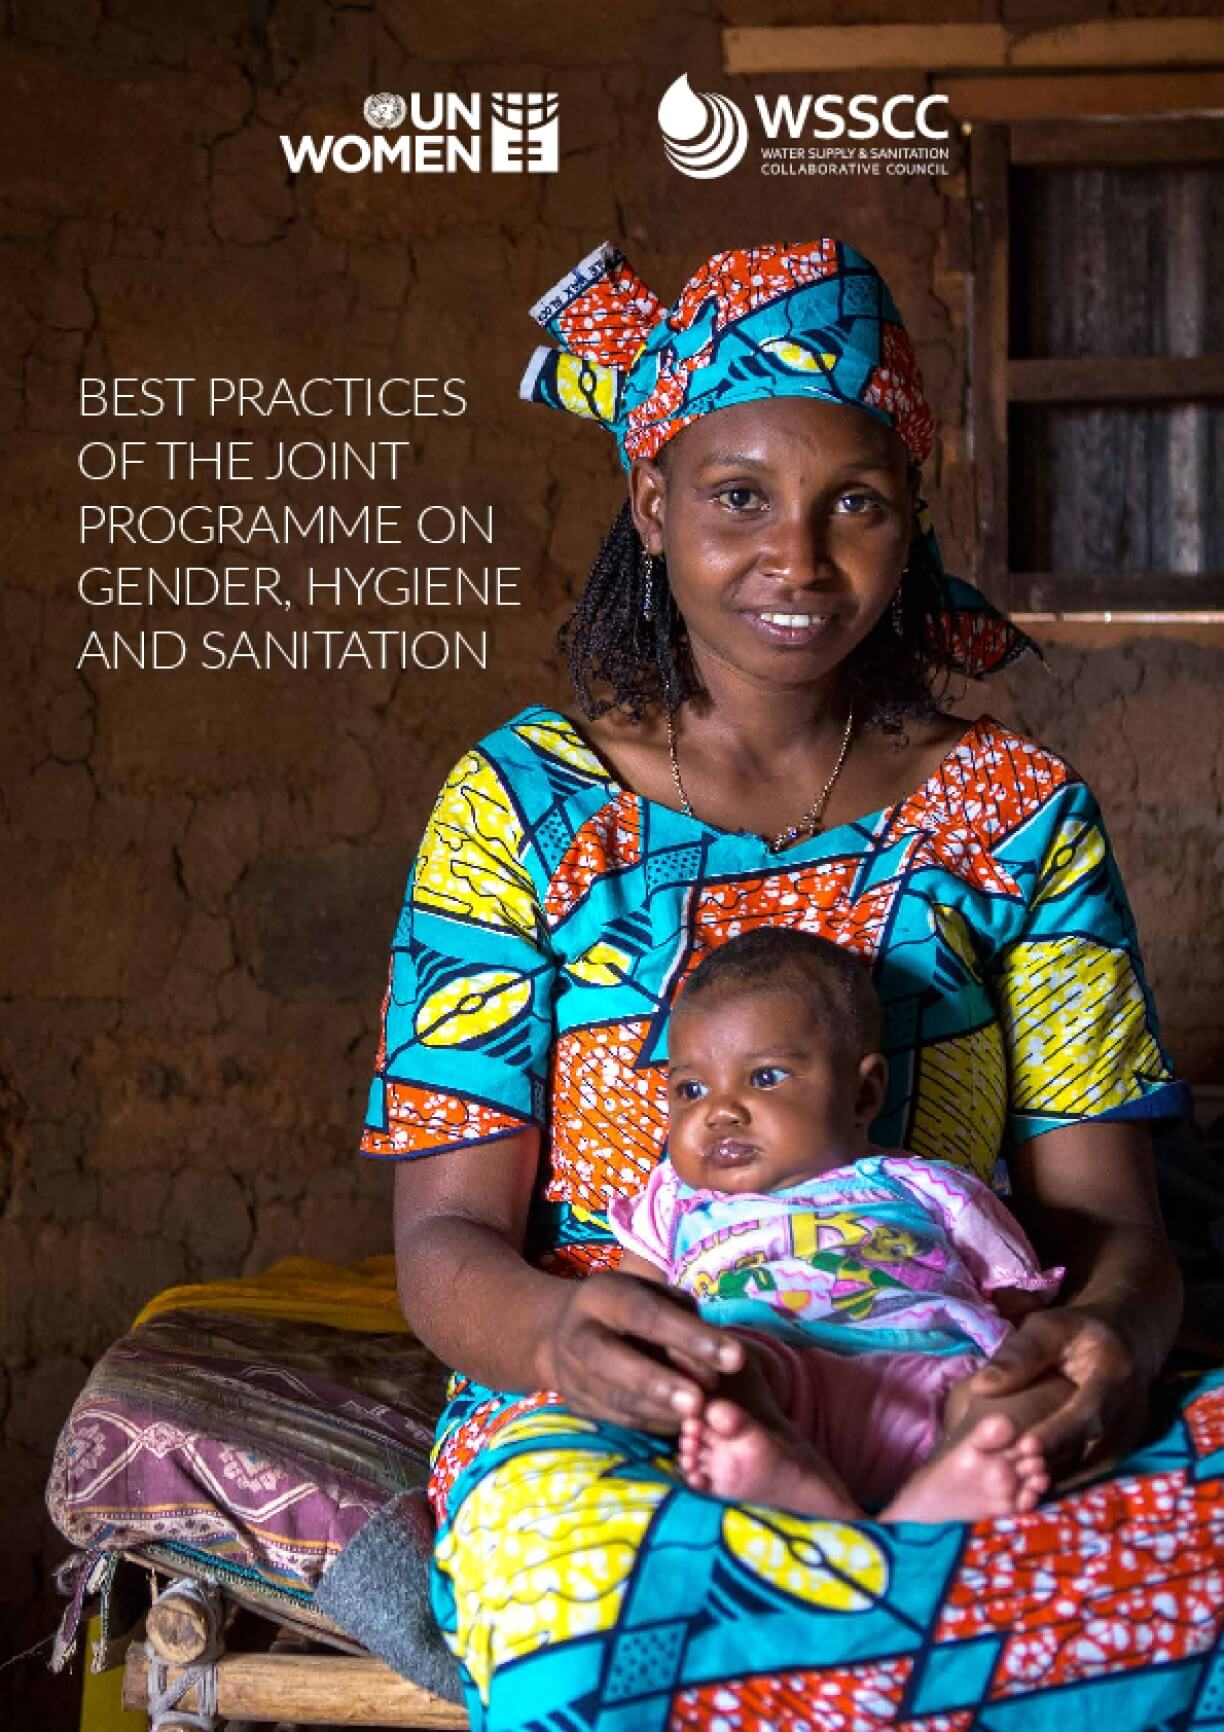 Best Practices of the Joint Programme on Gender, Hygiene and Sanitation